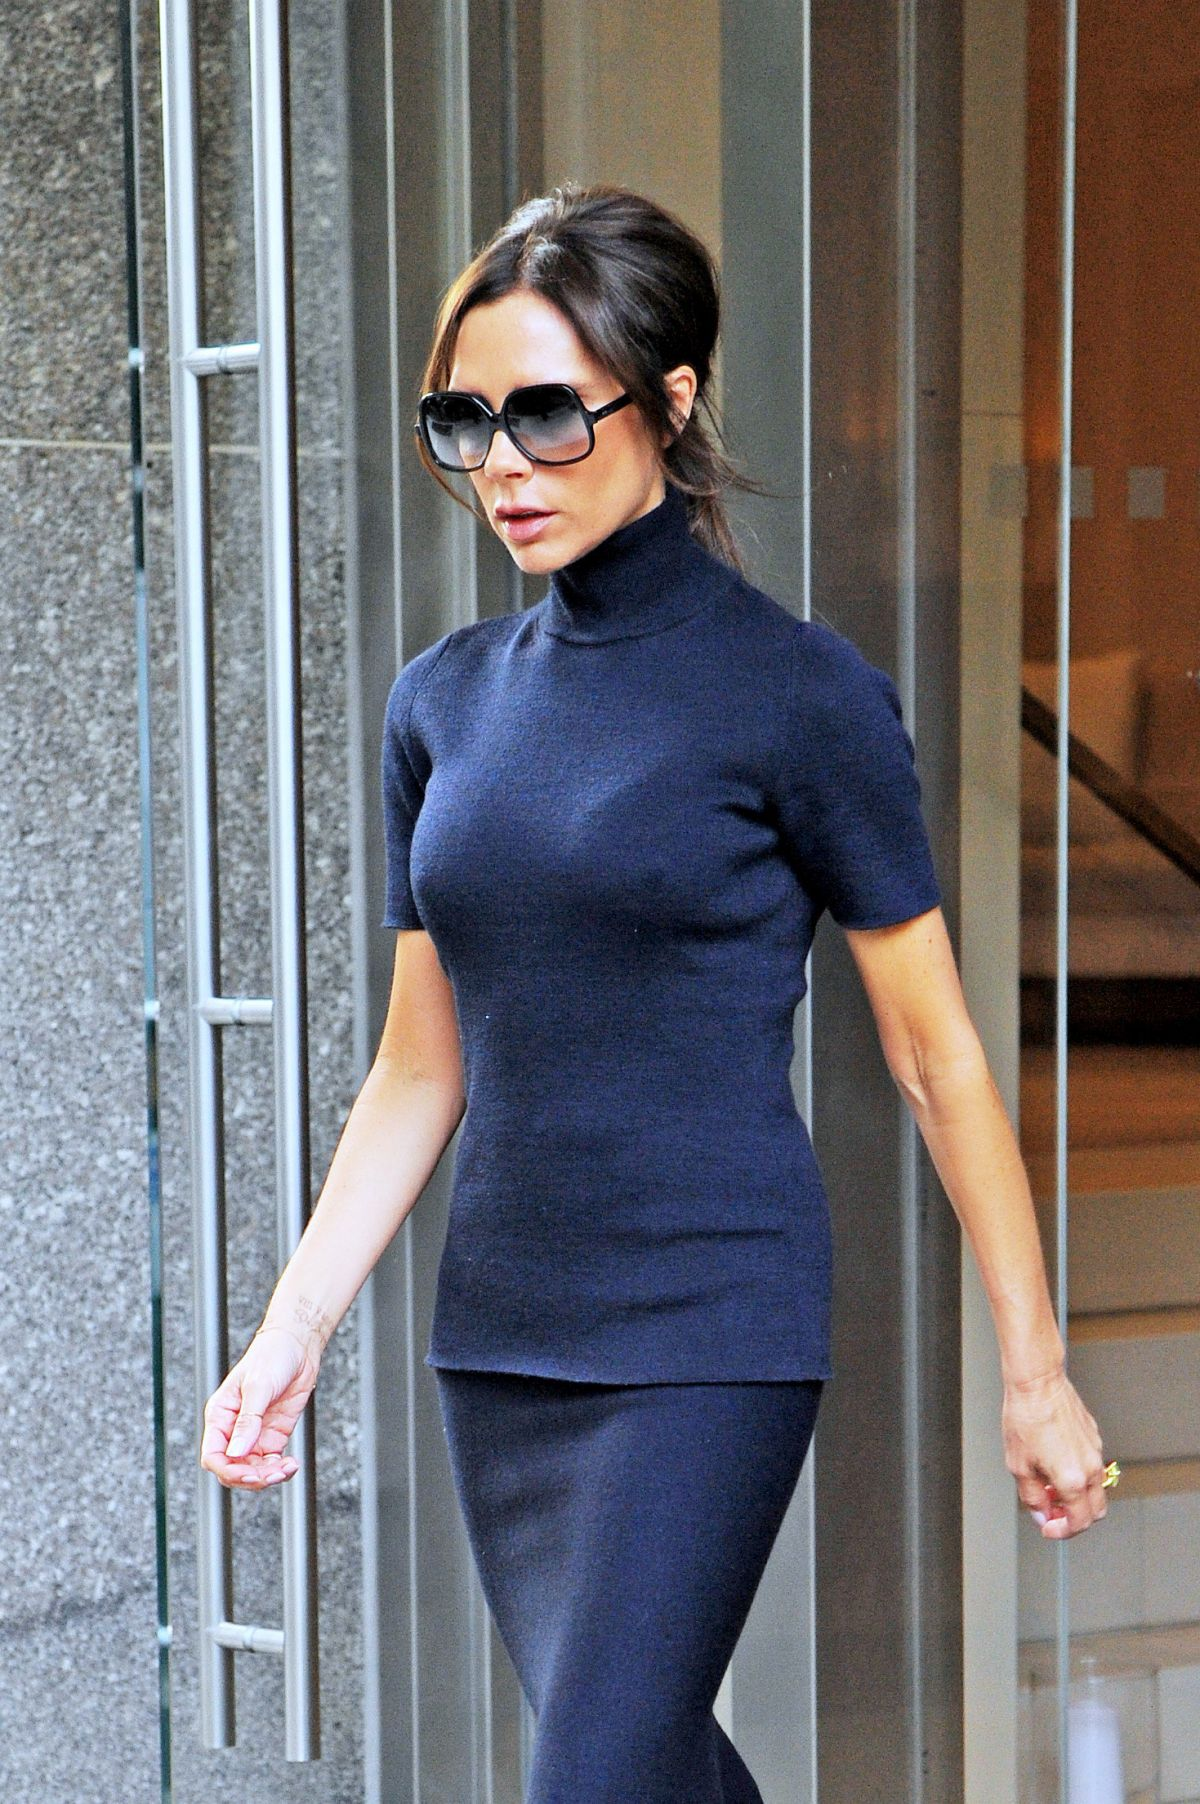 VICTORIA BECKHAM Out and About in New York 10/27/2015 ... Victoria Beckham